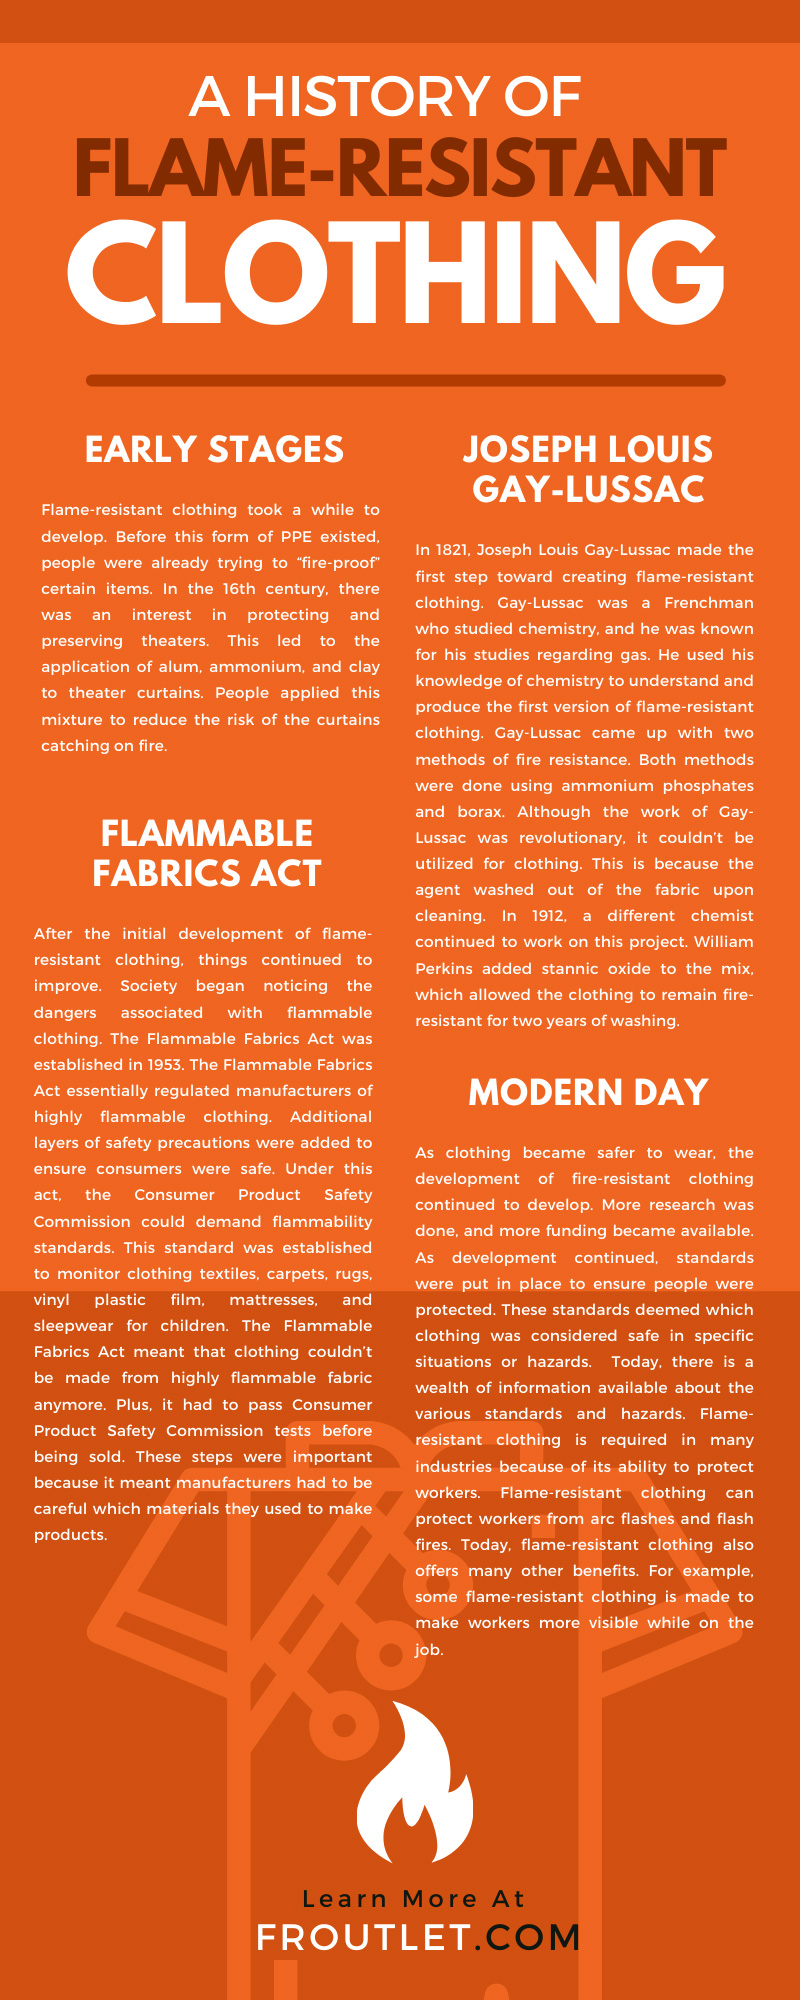 A History of Flame-Resistant Clothing